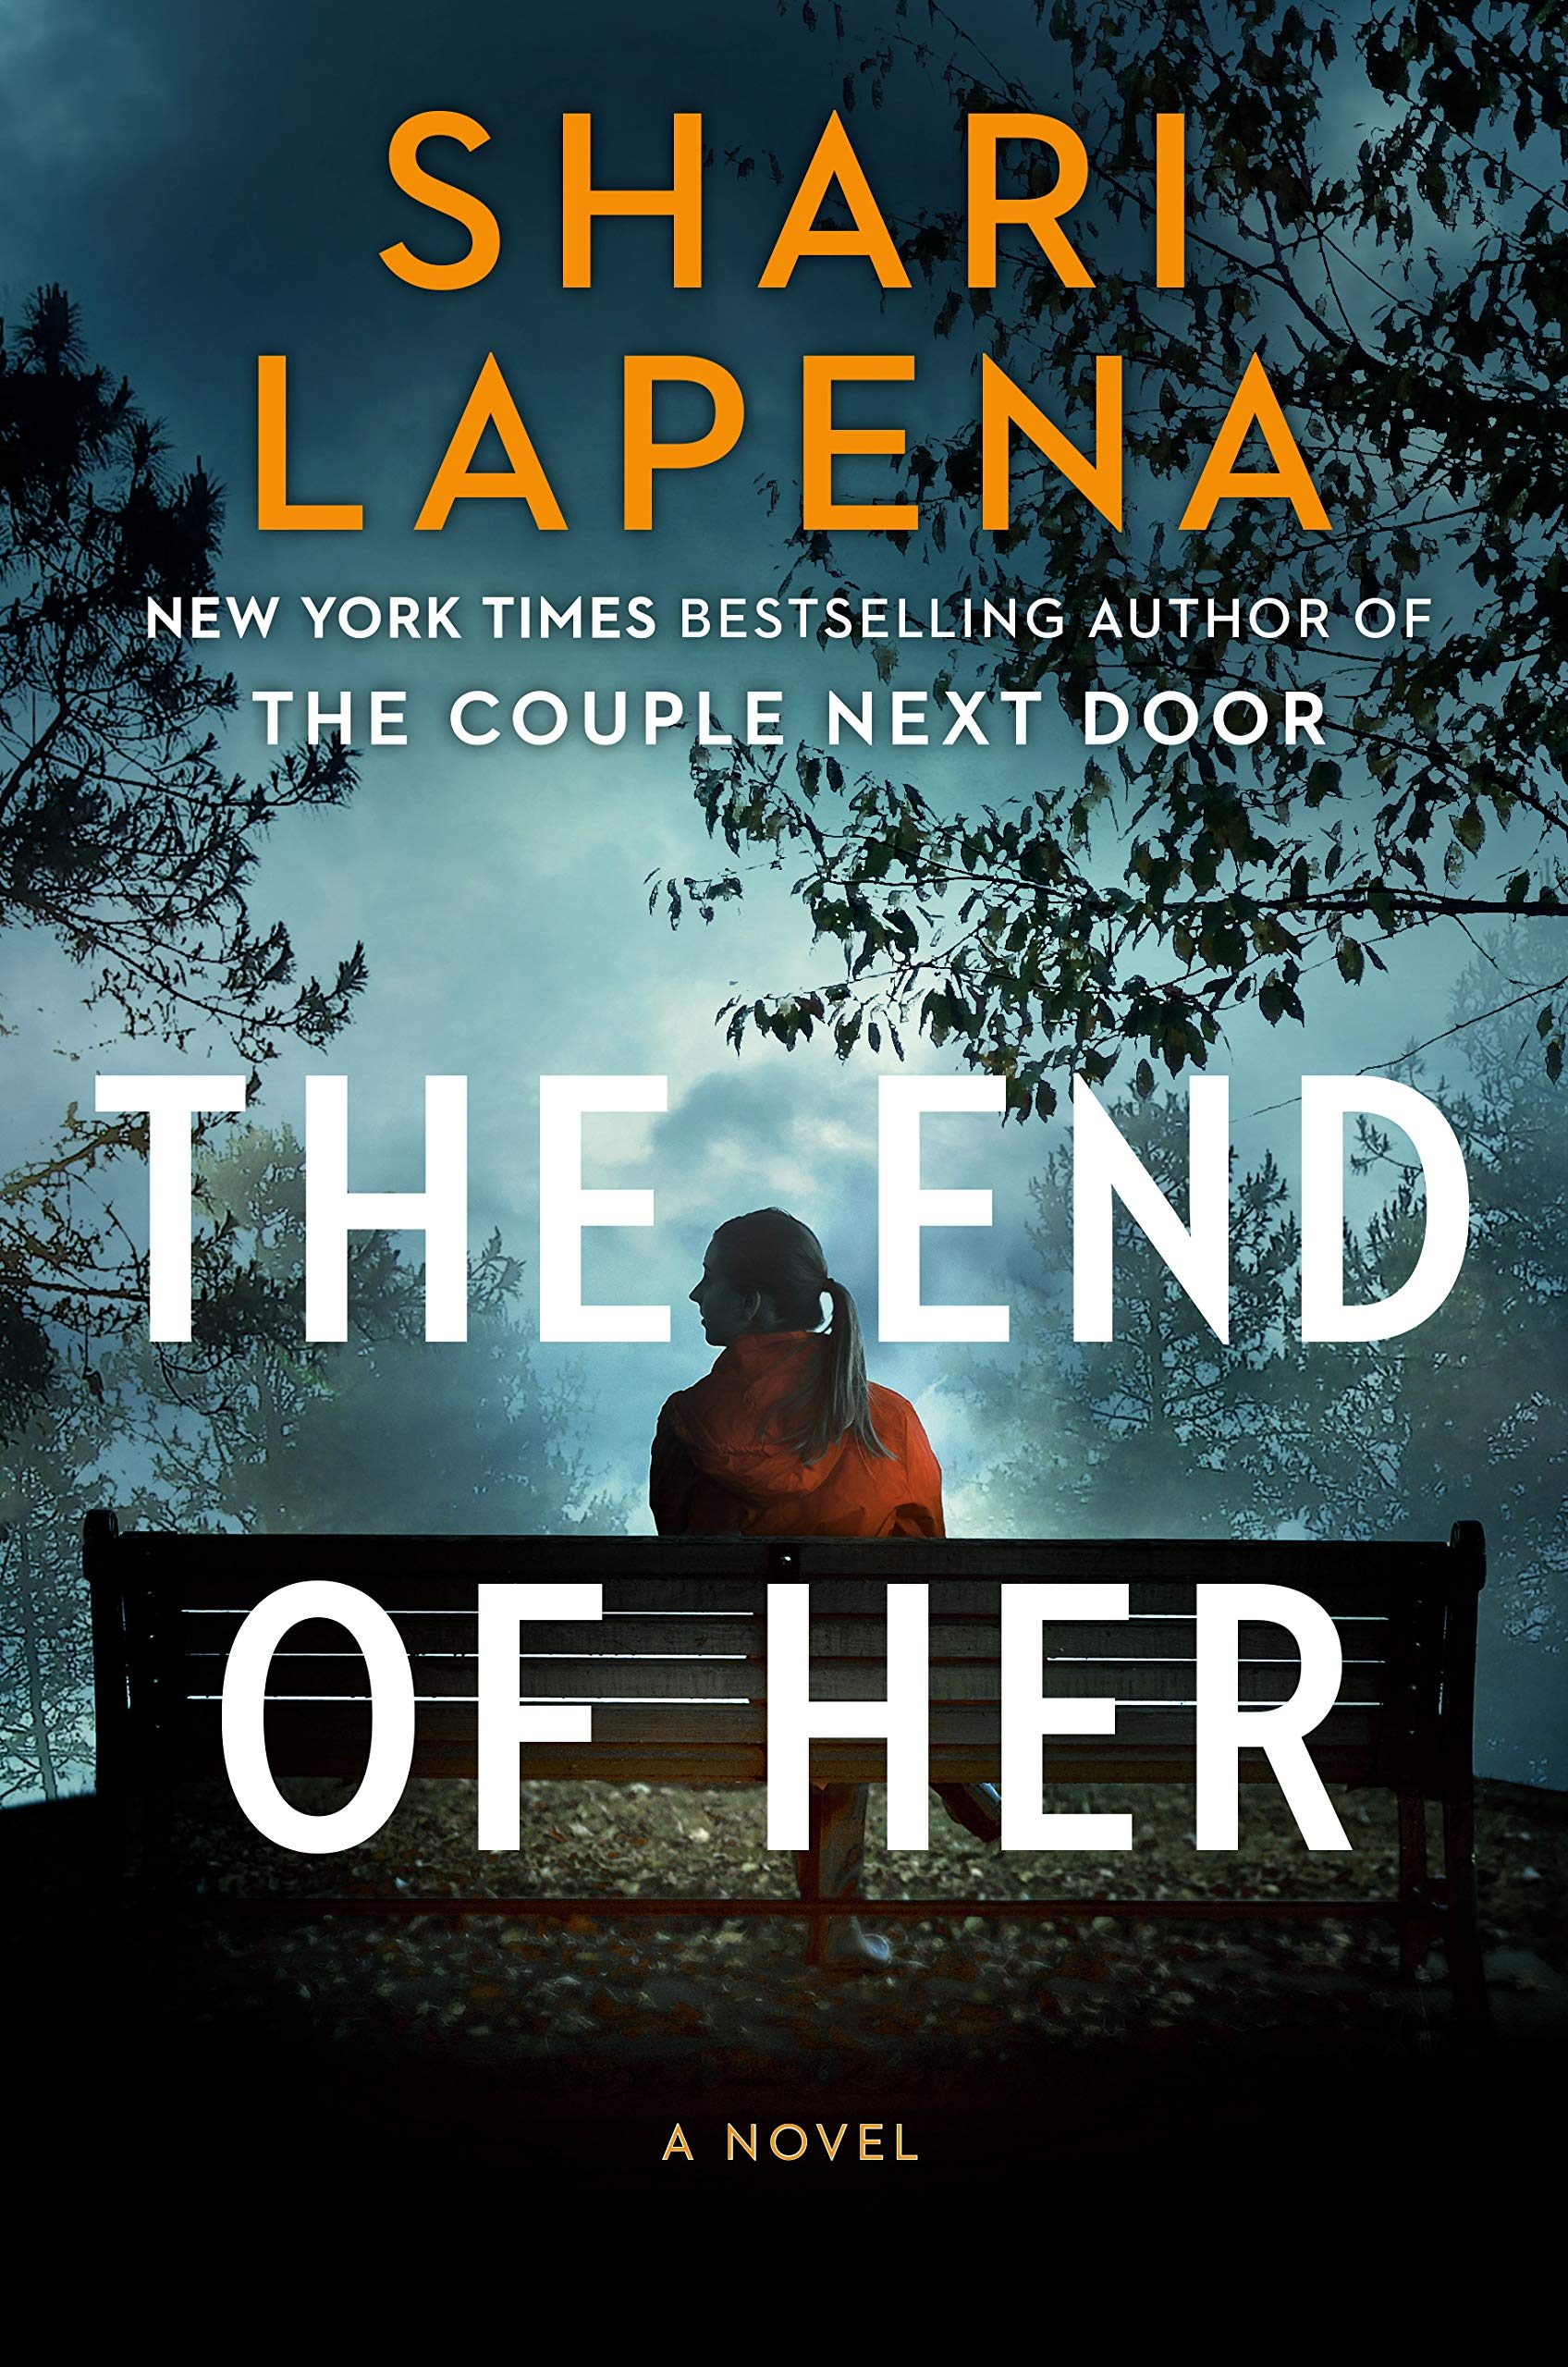 When Does The End Of Her By Shari Lapena Come Out? 2020 Mystery Thriller Releases